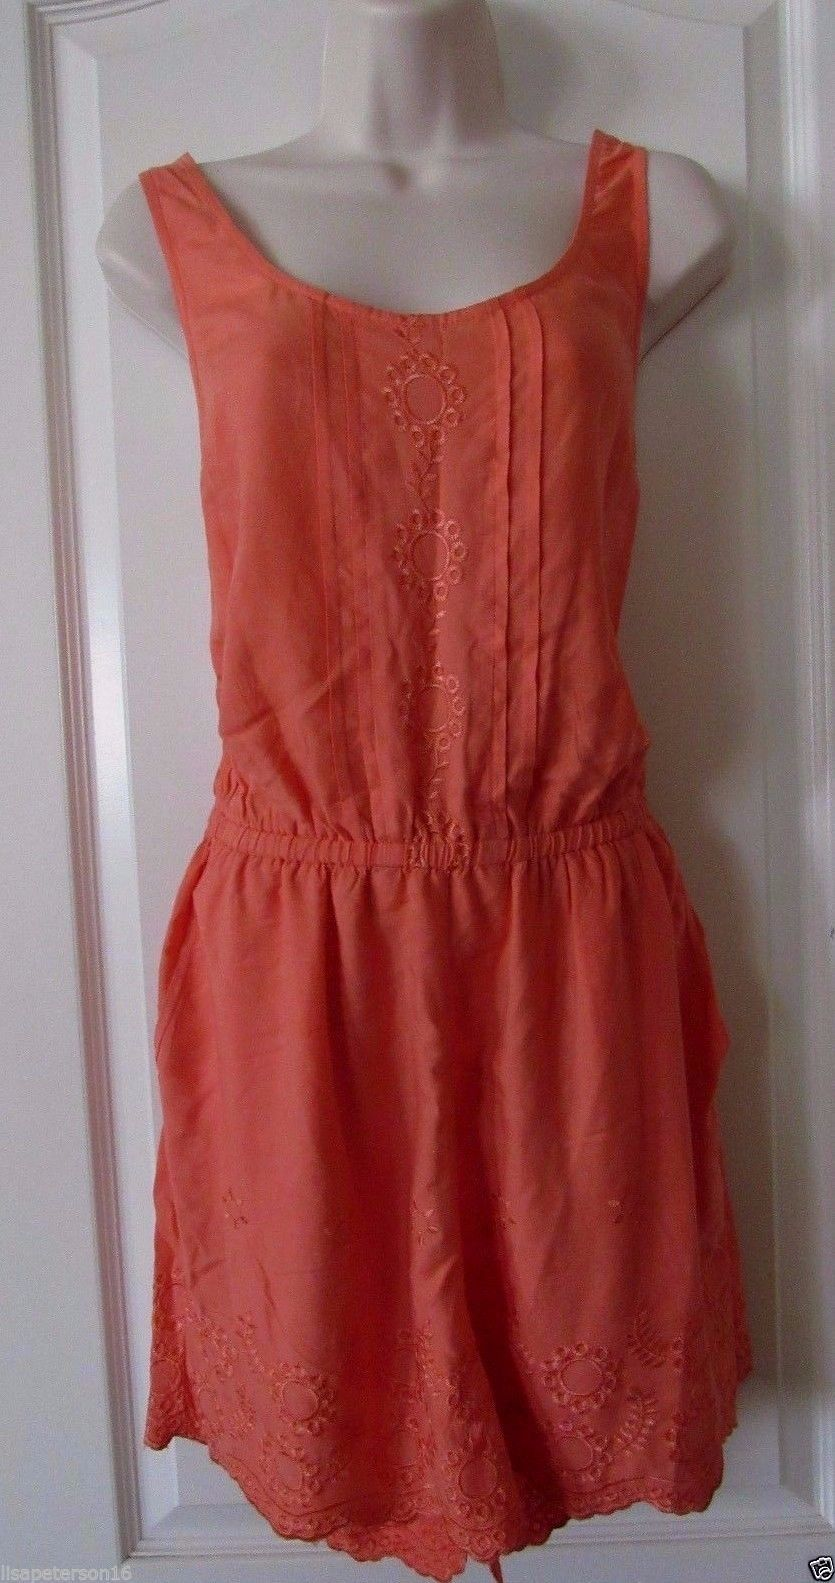 LC Lauren Conrad Coral Embroidered Romper Women's Size 8 NWT MSRP$54 SUPER CUTE!